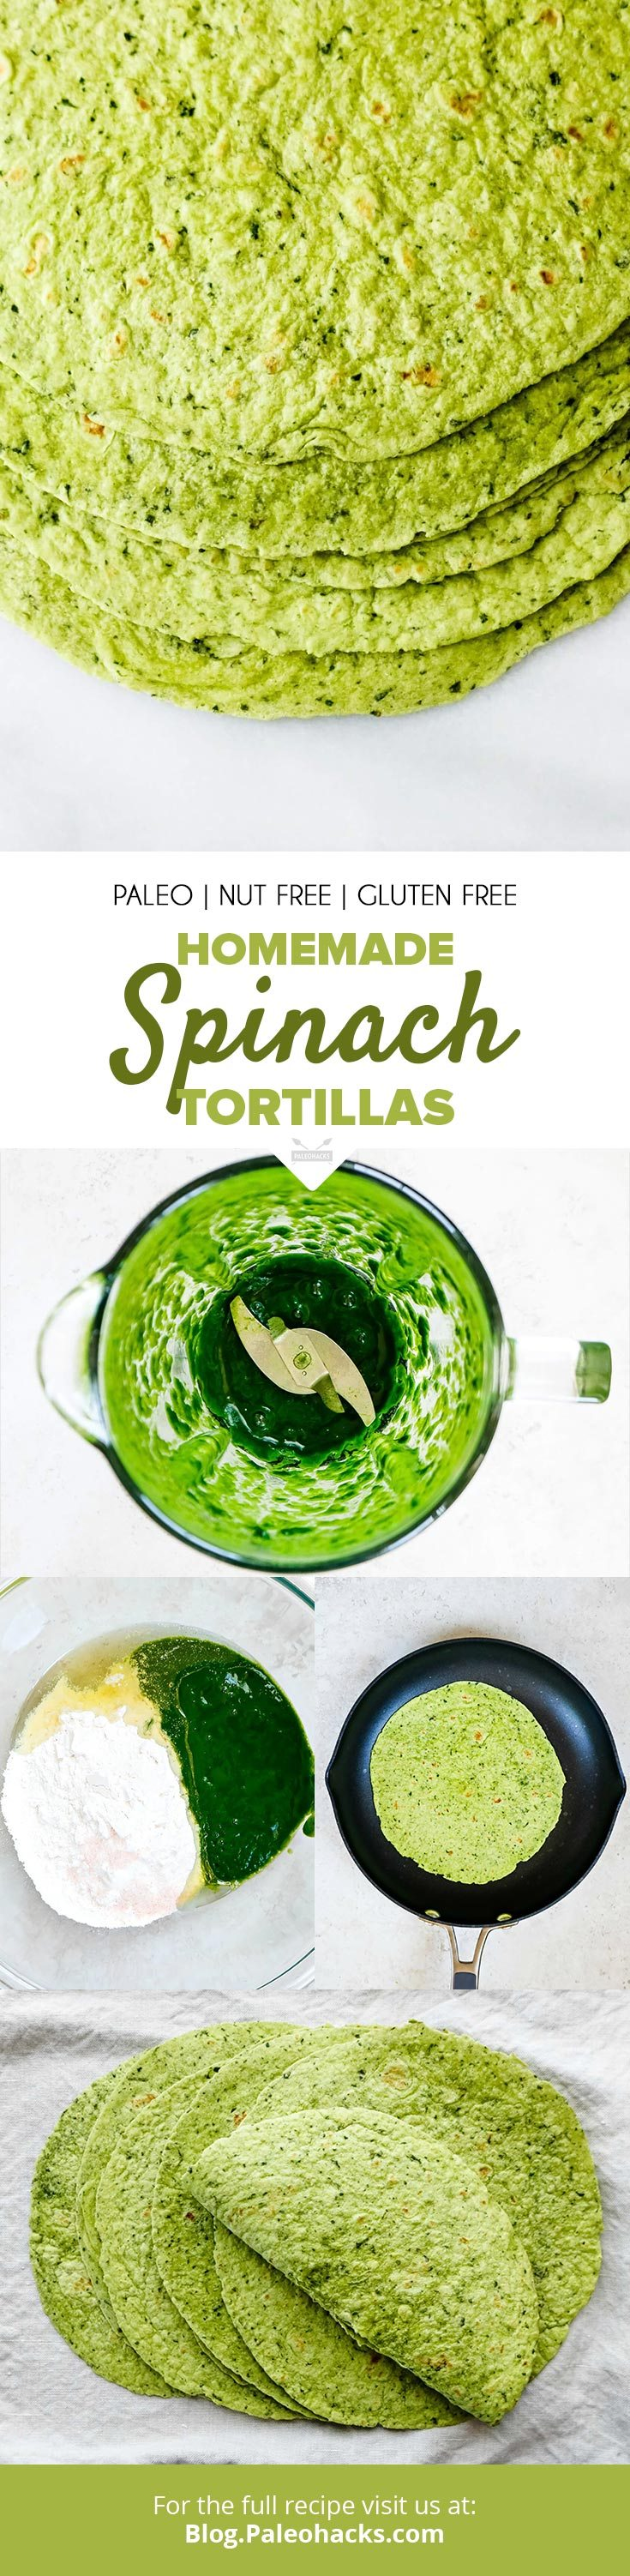 PIN-Homemade-Spinach-Tortillas.jpg